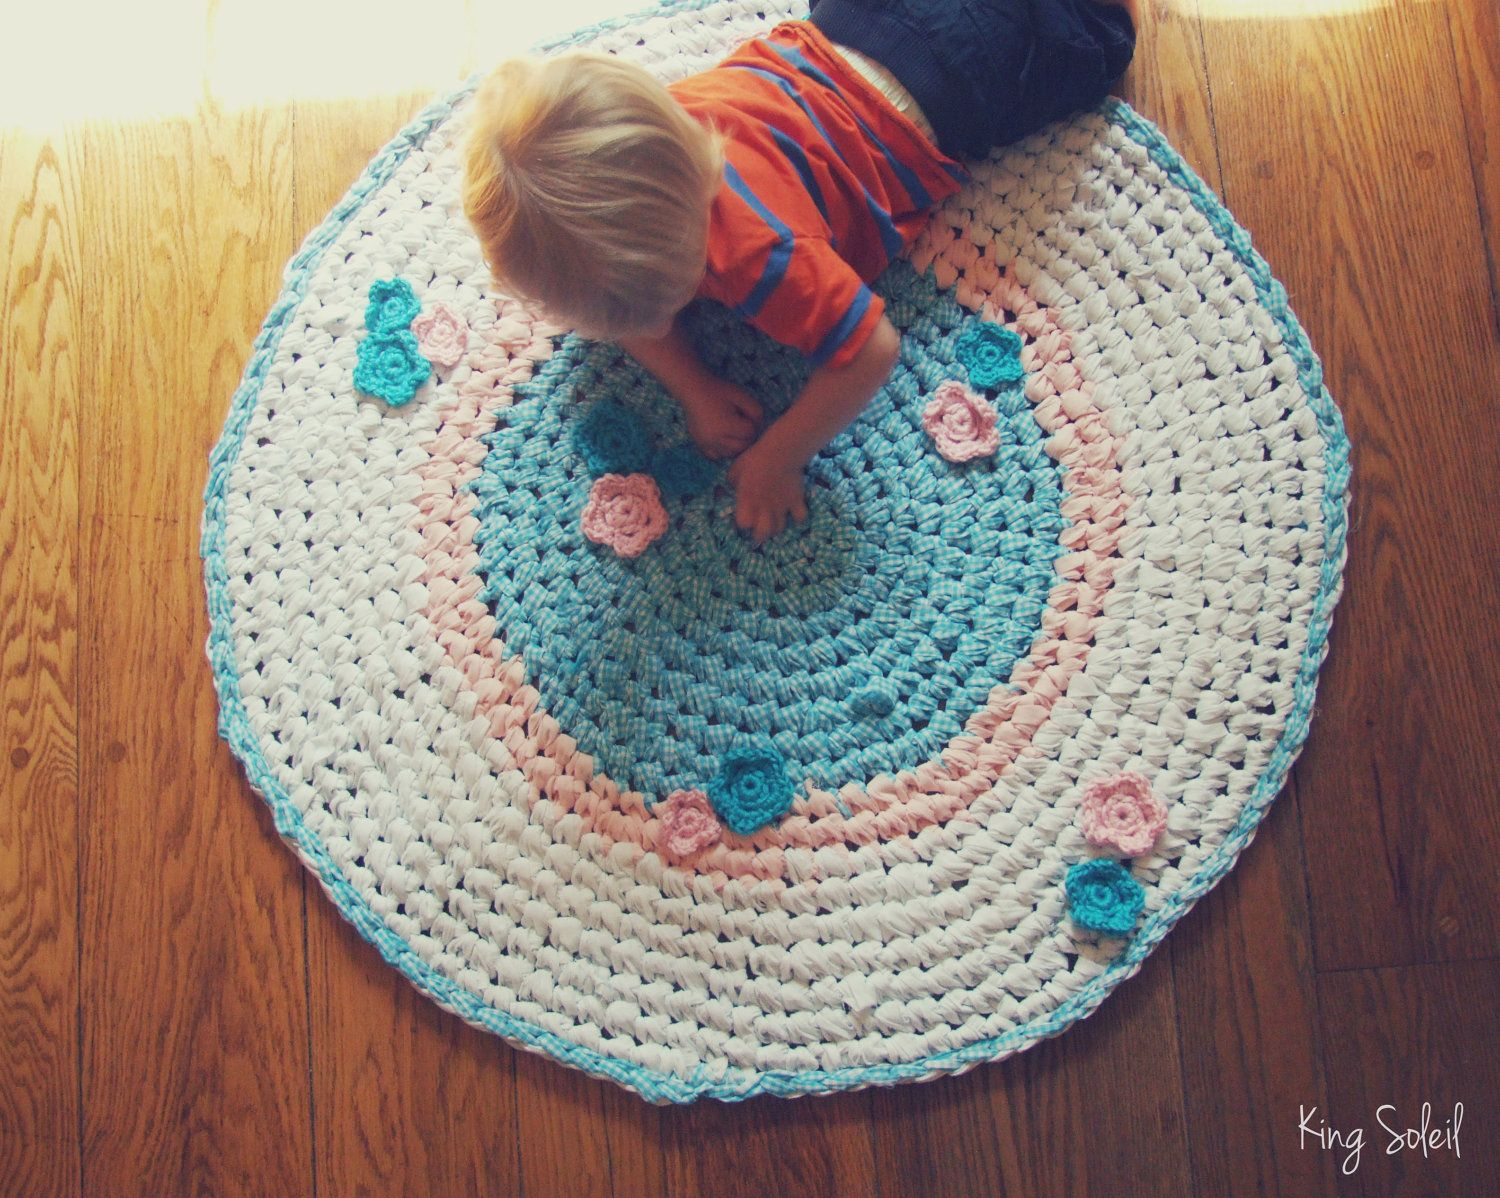 Crochet Rug Garden Flowers Teal Gingham Pink And White Nursery Children S Rug As Featured In Inside Crochet Maga Childrens Rugs Baby Rag Quilts Crochet Nursery